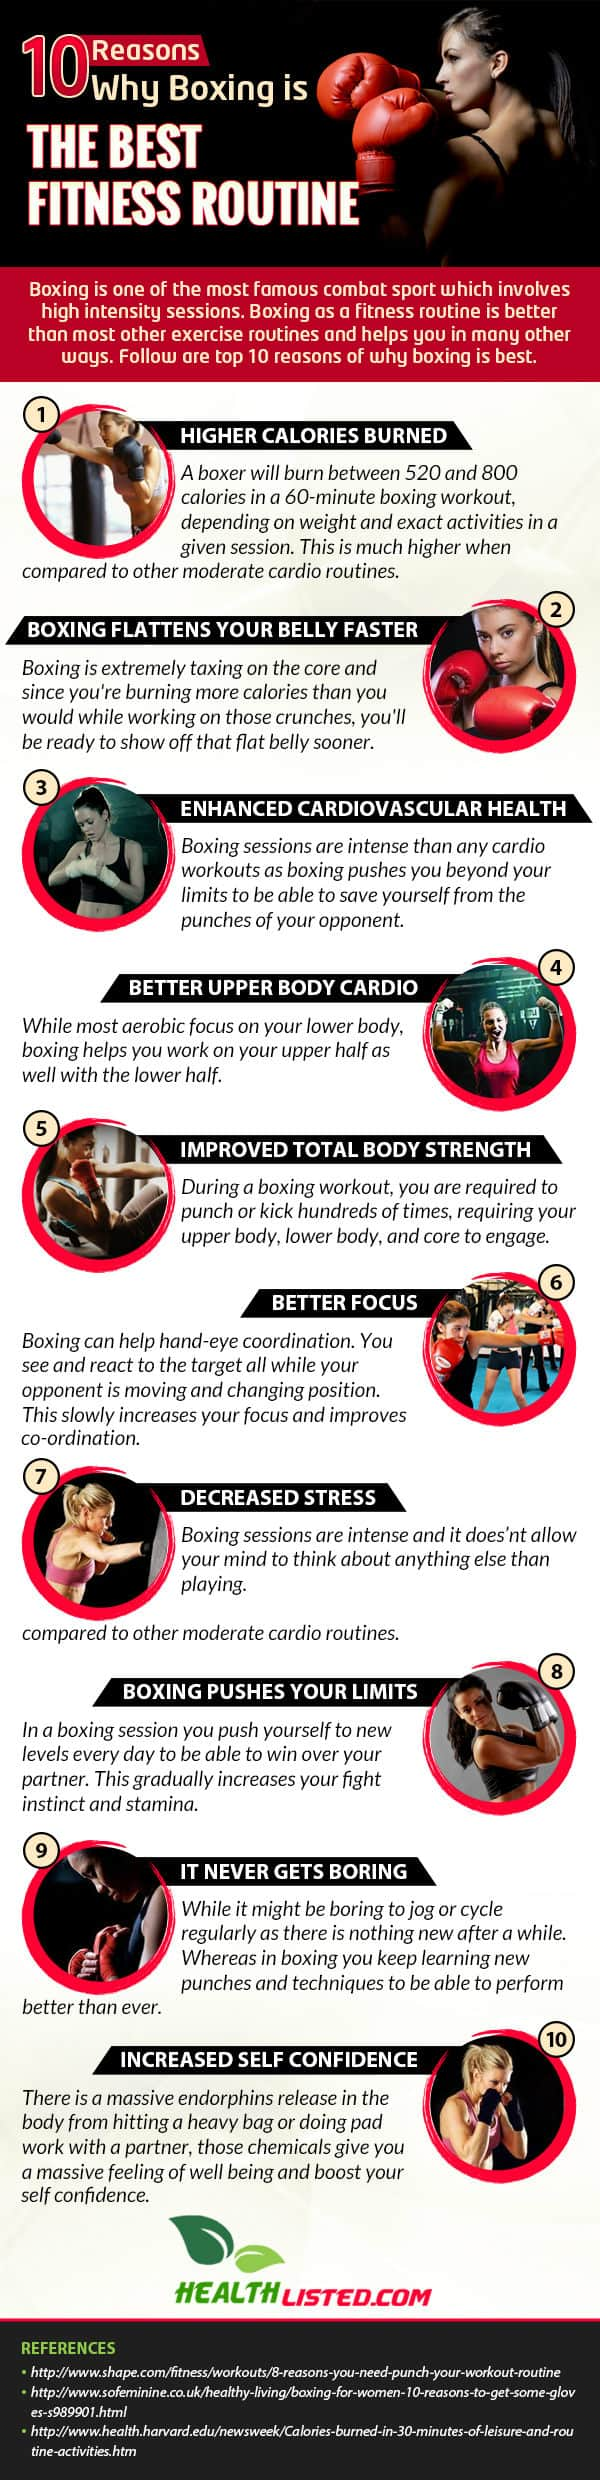 10_Reasons_Why_Boxingisthe_Best_Fitness_Routine